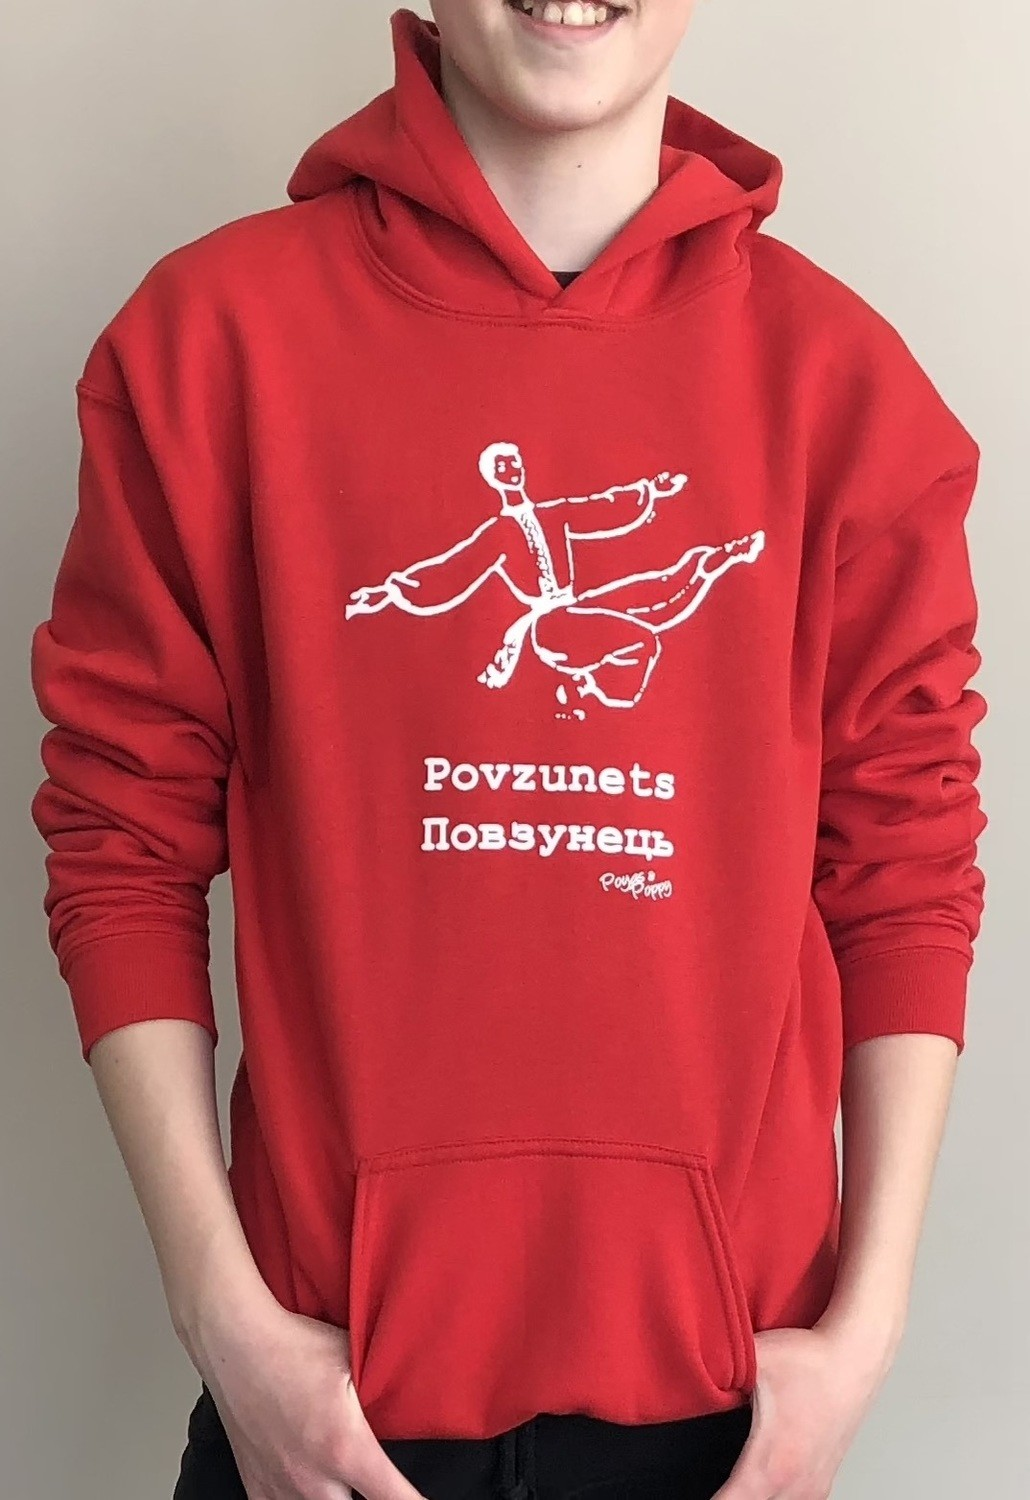 Povzunets Youth Hoodie